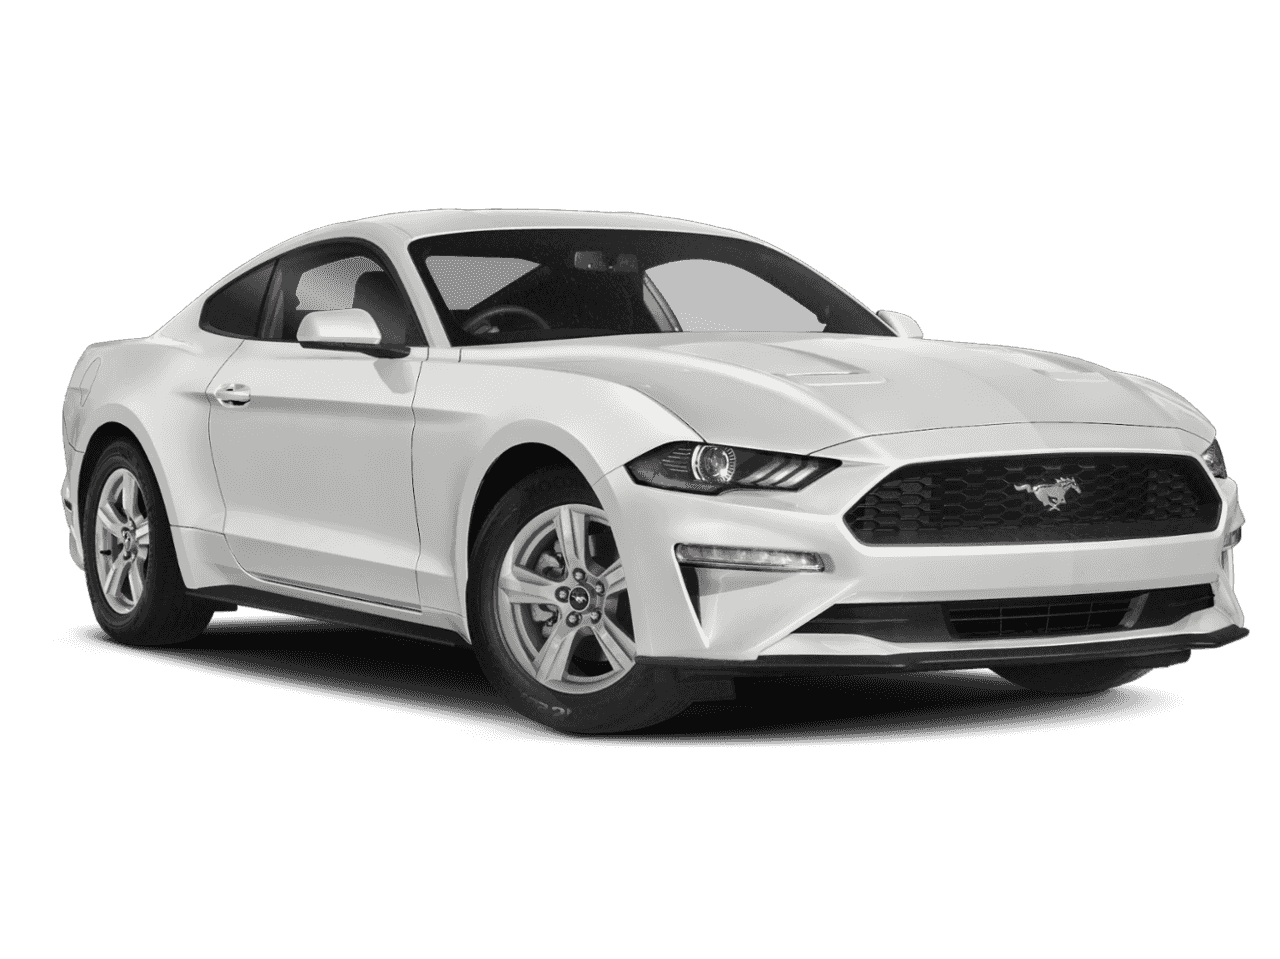 New 2019 Ford Mustang Ecoboost Premium 2d Coupe In San Jose Additional Wiring Diagram For The 1949 Chevrolet Passenger Cars Convertible